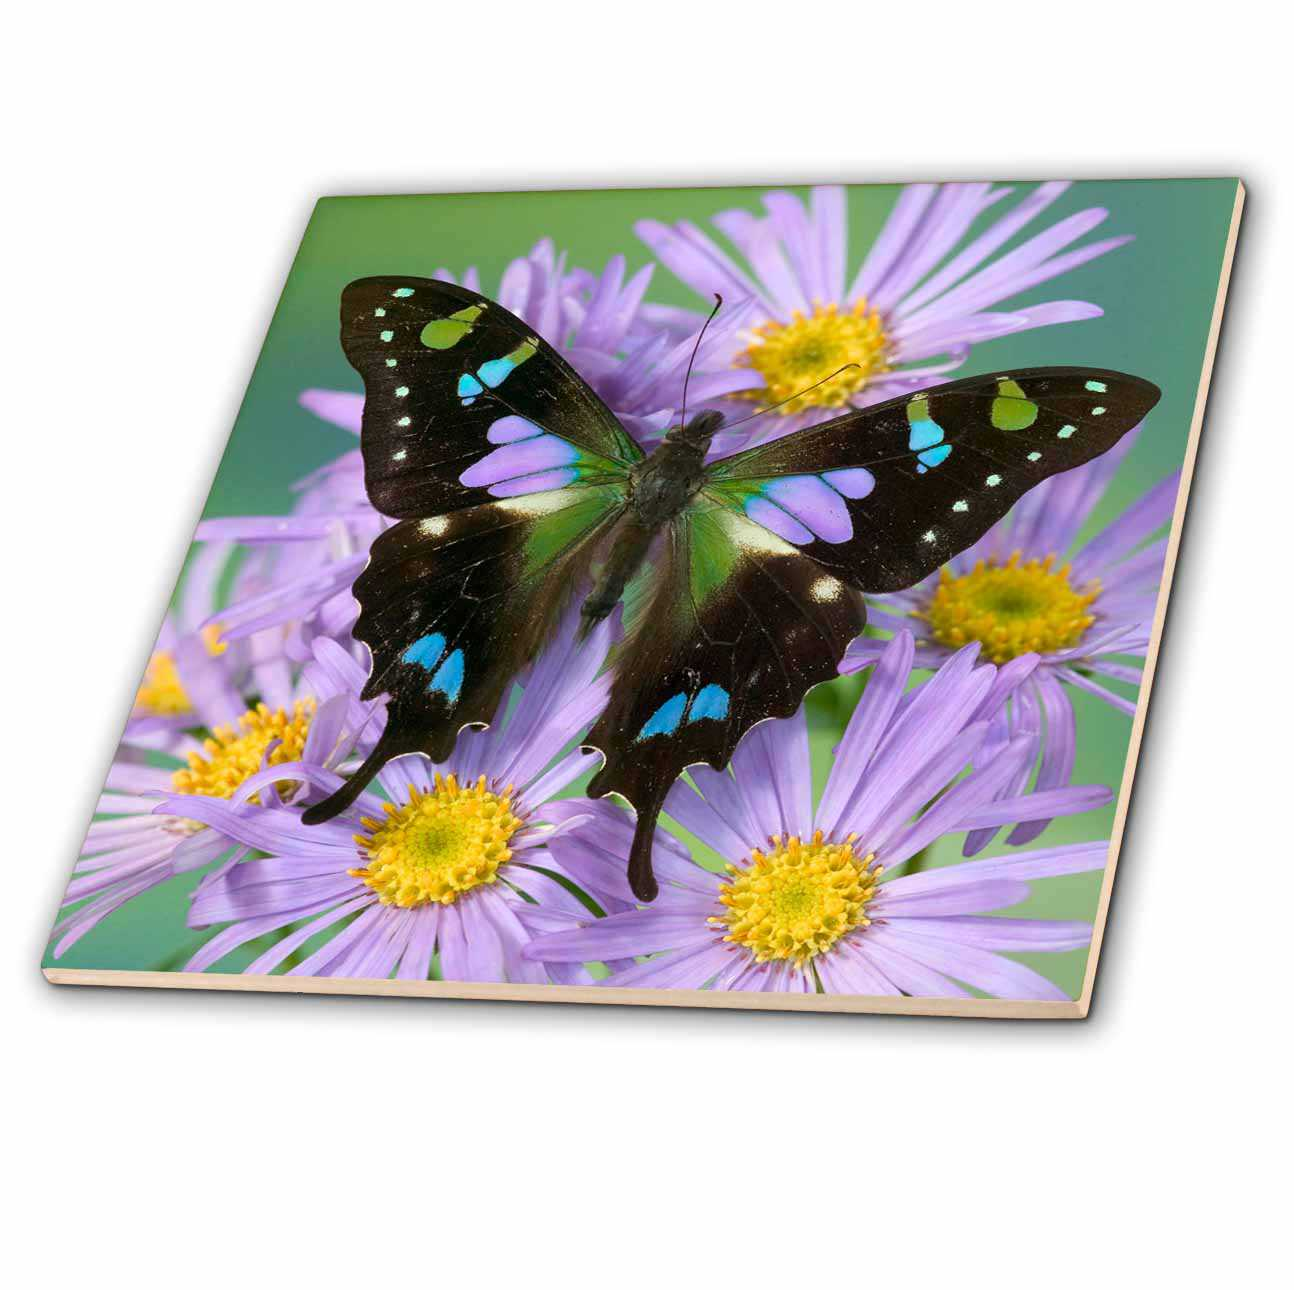 3dRose Butterfly on Flowers, Purple Spotted Swallowtail - US48 DGU0519 - Darrell Gulin - Ceramic Tile, 8-inch